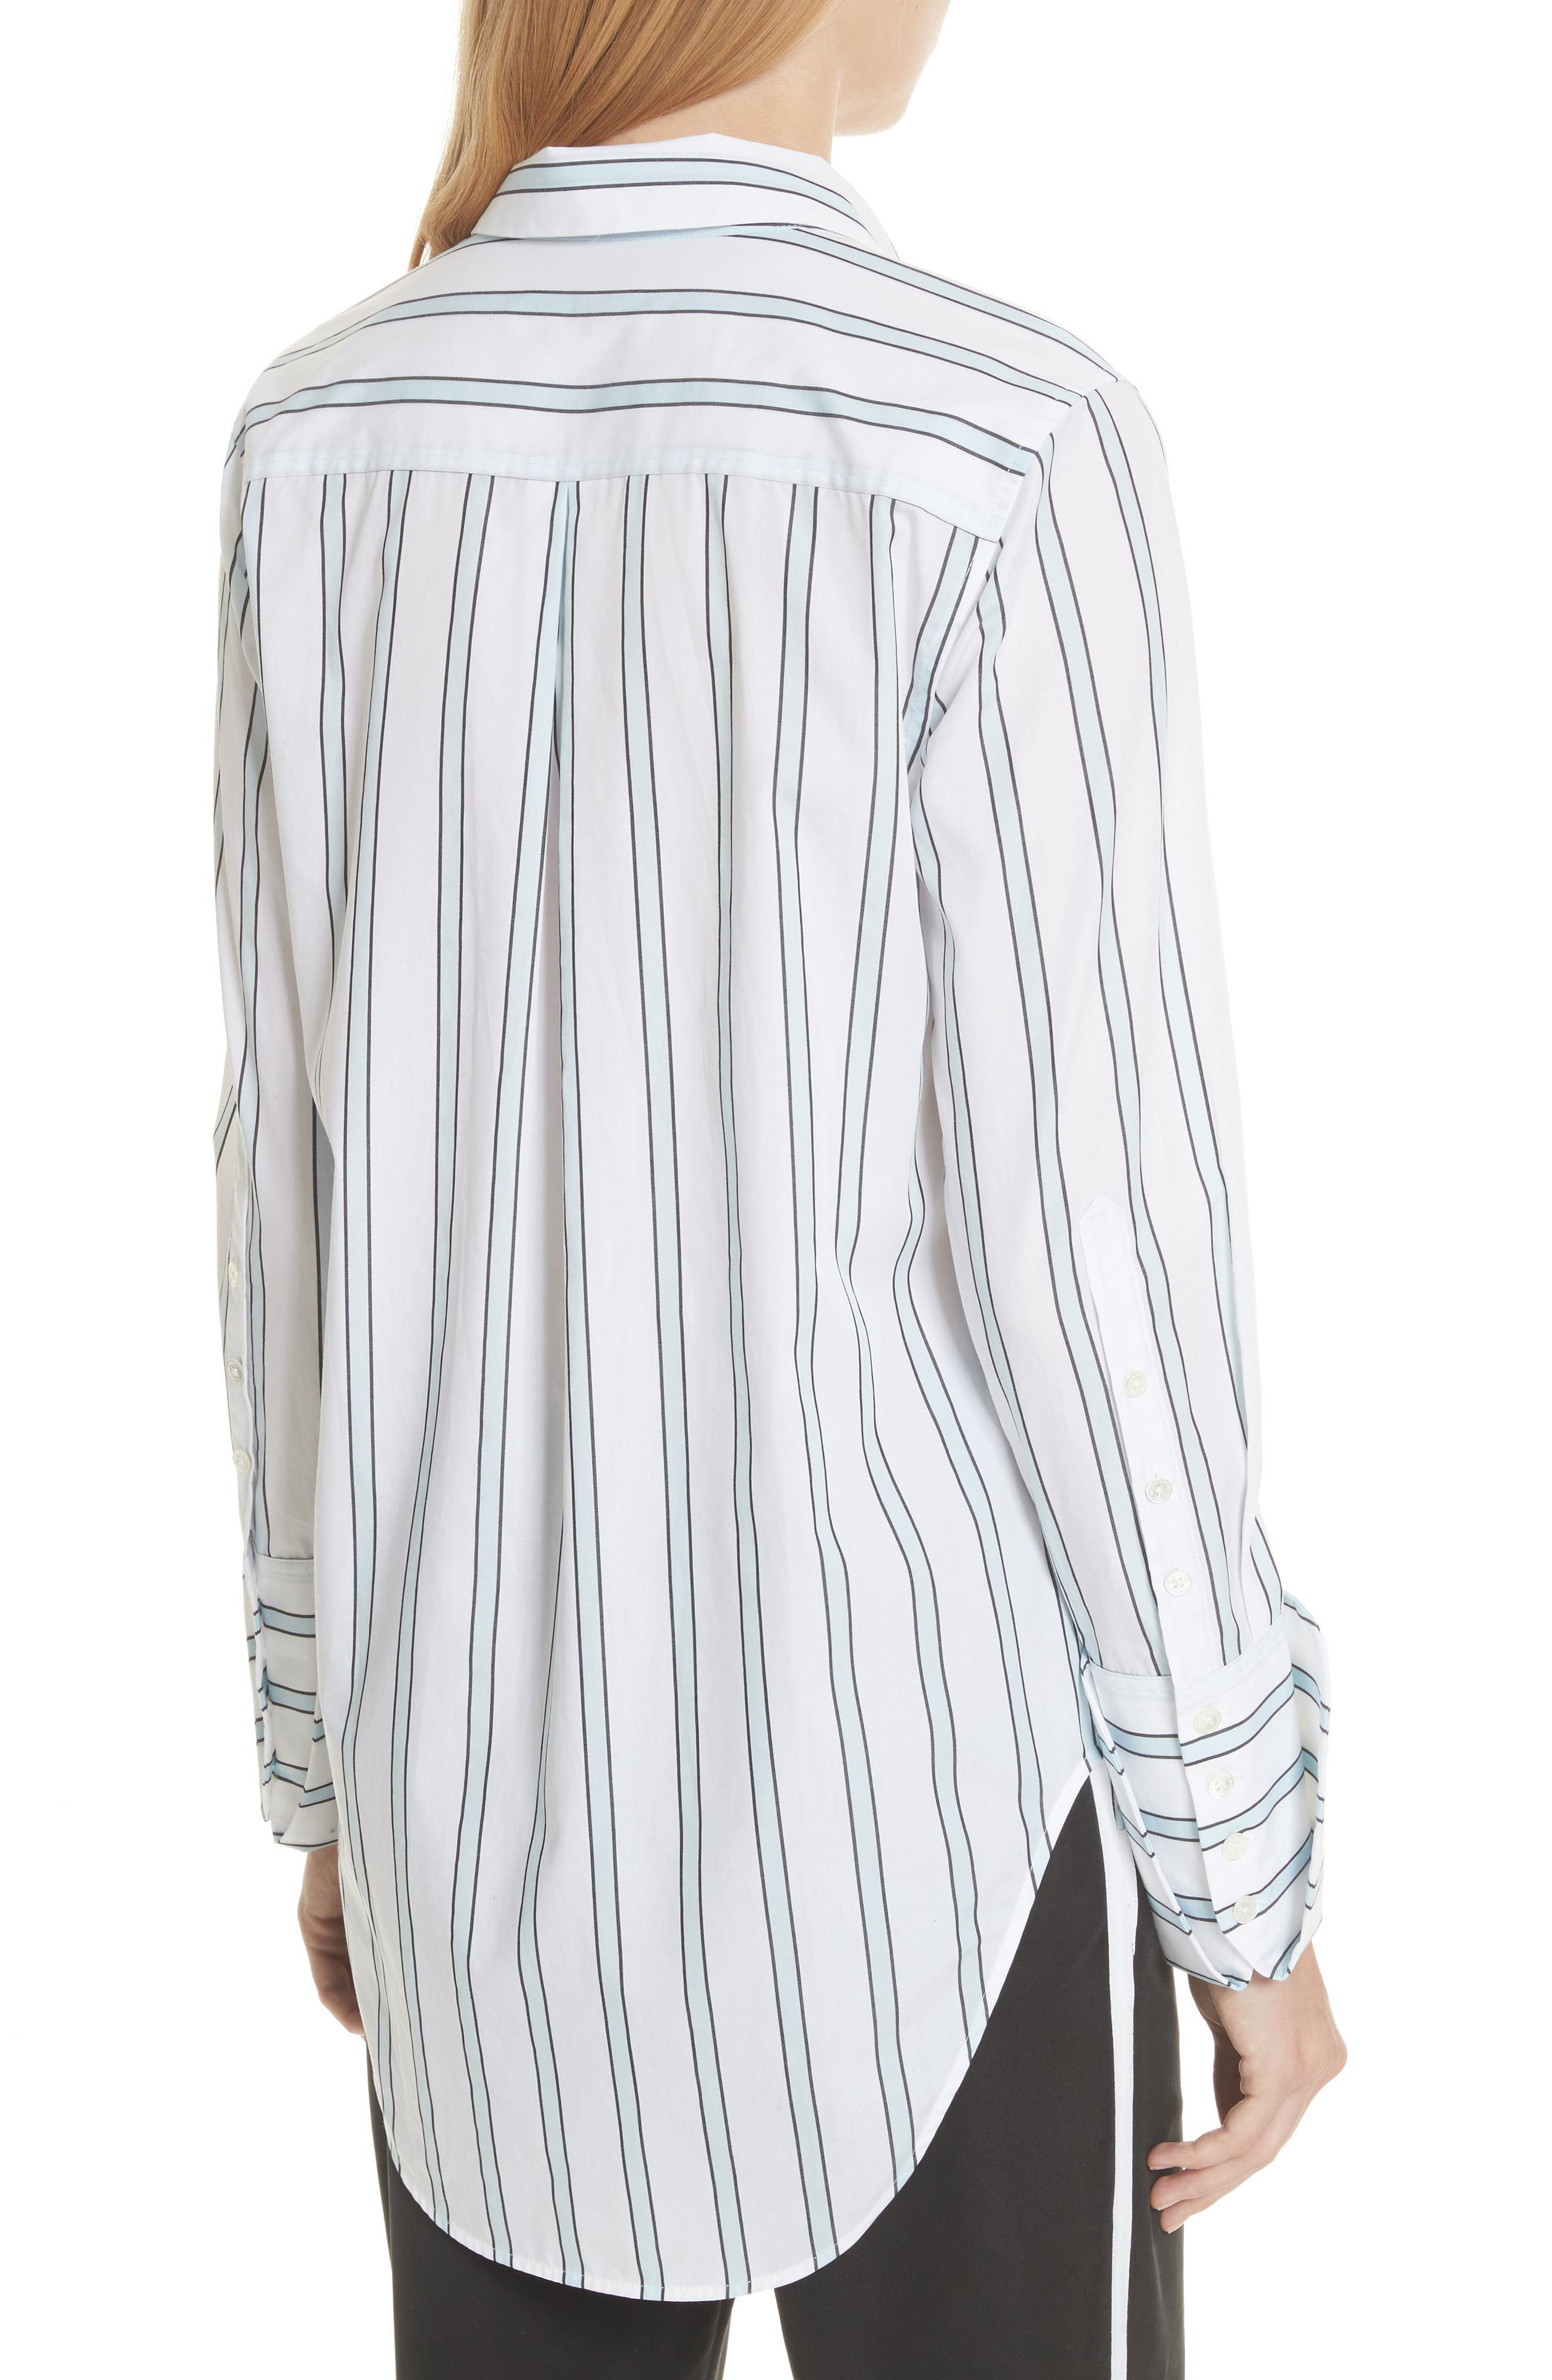 Essential Neopolitan Cuff Stripe Shirt,                             Alternate thumbnail 2, color,                             Bright White-Cool Breeze